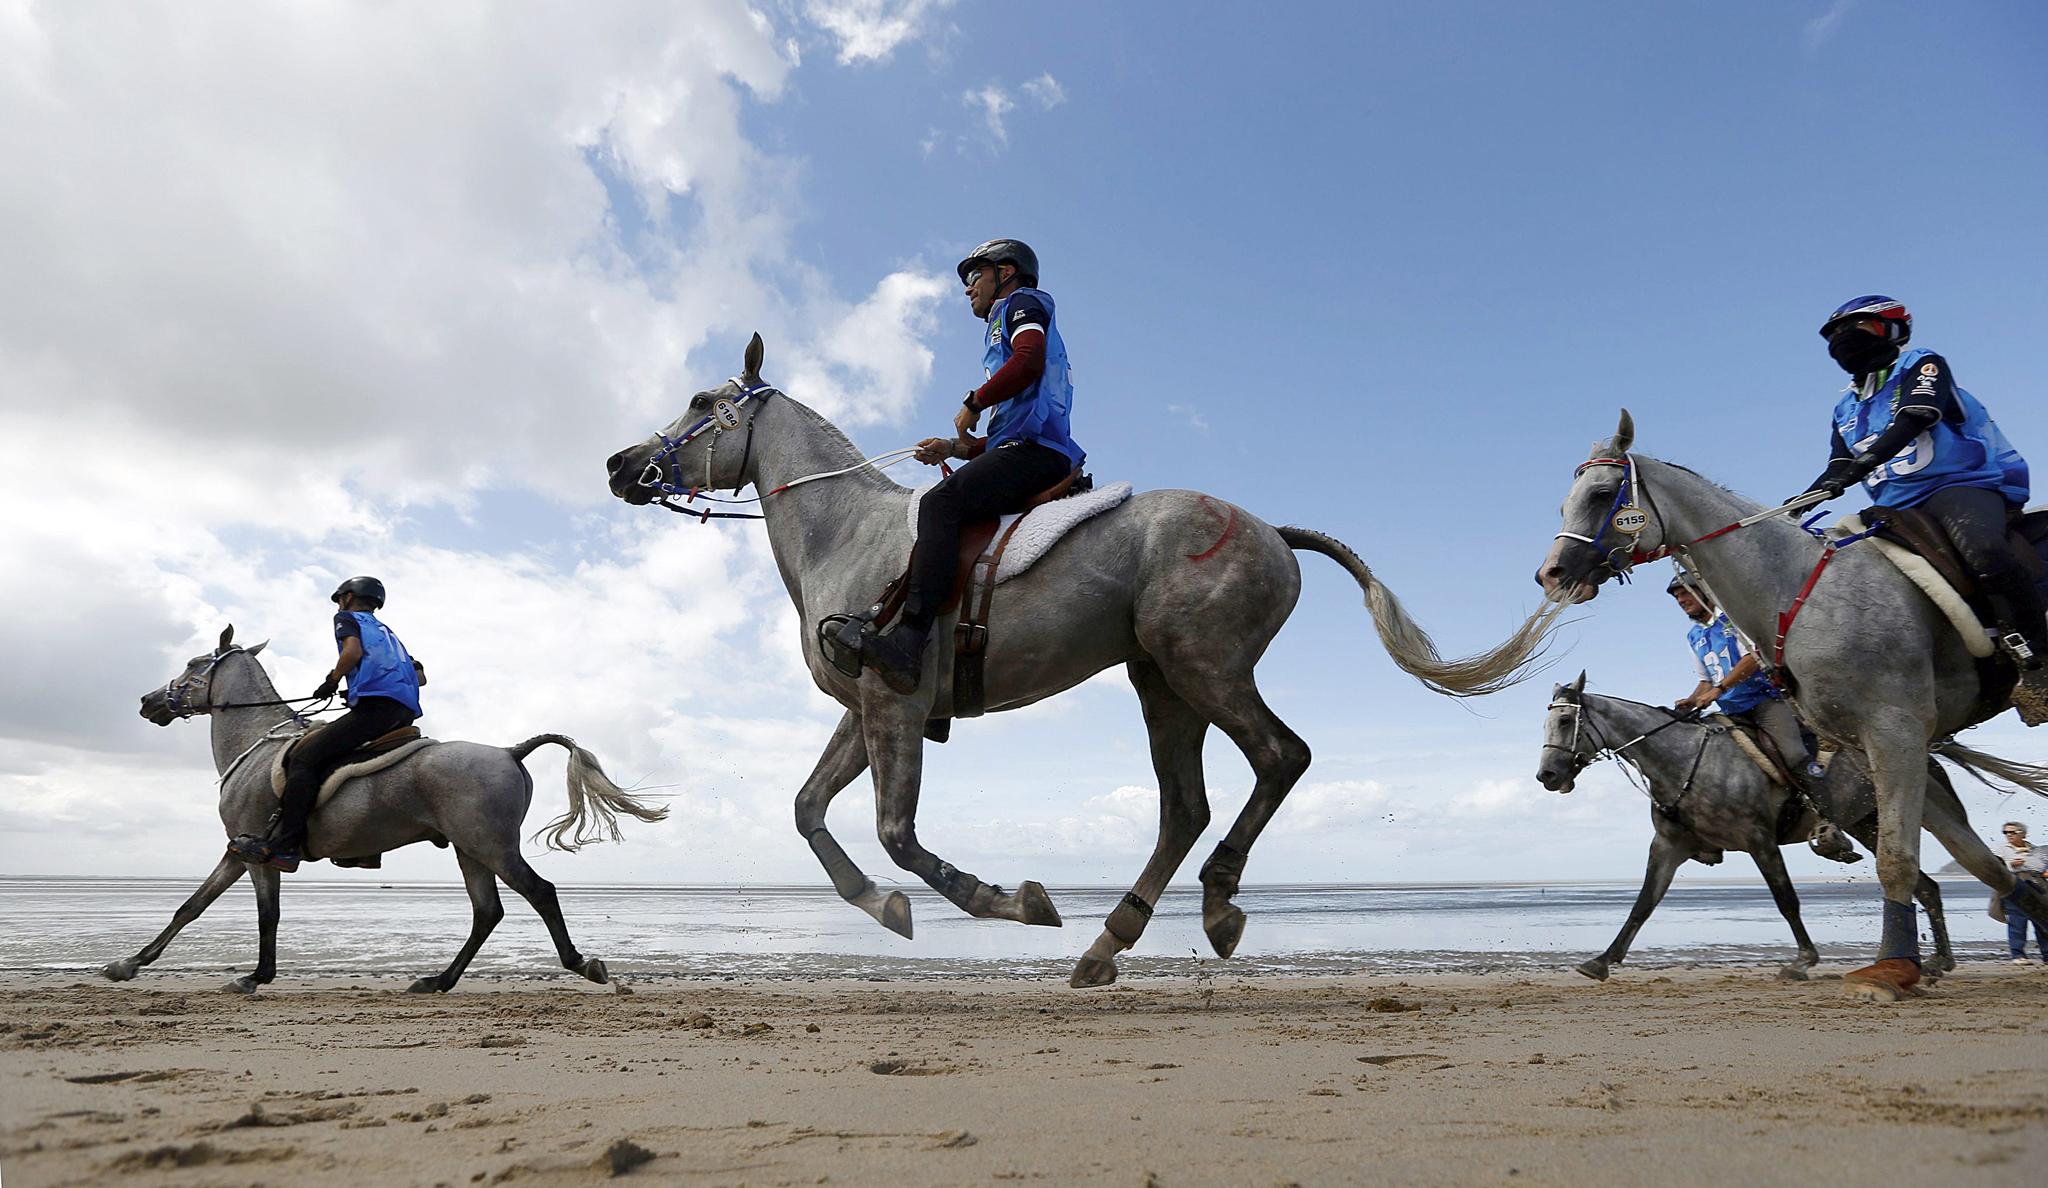 Competitors compete on the beach during the Endurance Competition at the World Equestrian Games at Dragey...Competitors compete on the beach during the Endurance Competition at the World Equestrian Games at Dragey in Normandy, western France, August 28, 2014.  REUTERS/Regis Duvignau (FRANCE - Tags: SPORT EQUESTRIANISM ANIMALS)